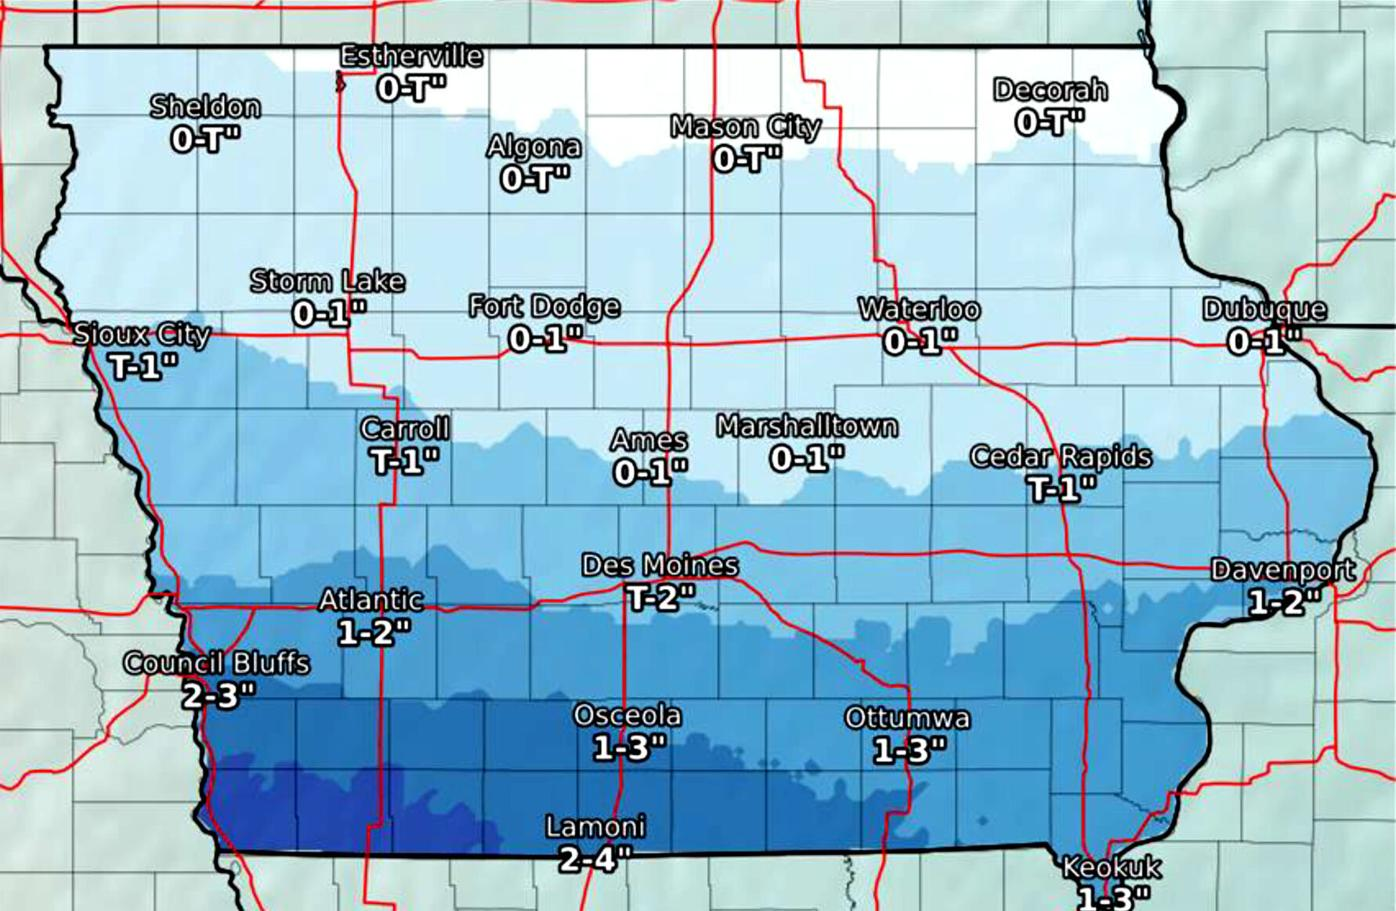 Saturday snow forecast 2/6/21 as of 2/5/21 PM